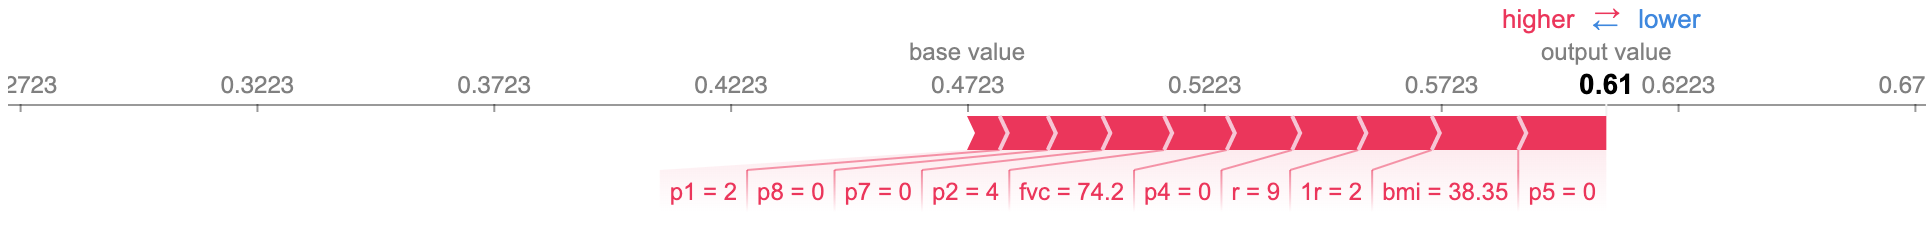 Force plot of the feature importance, for the same ALS patient, on timestamp 9. The size of each feature value's block corresponds to its contribution.